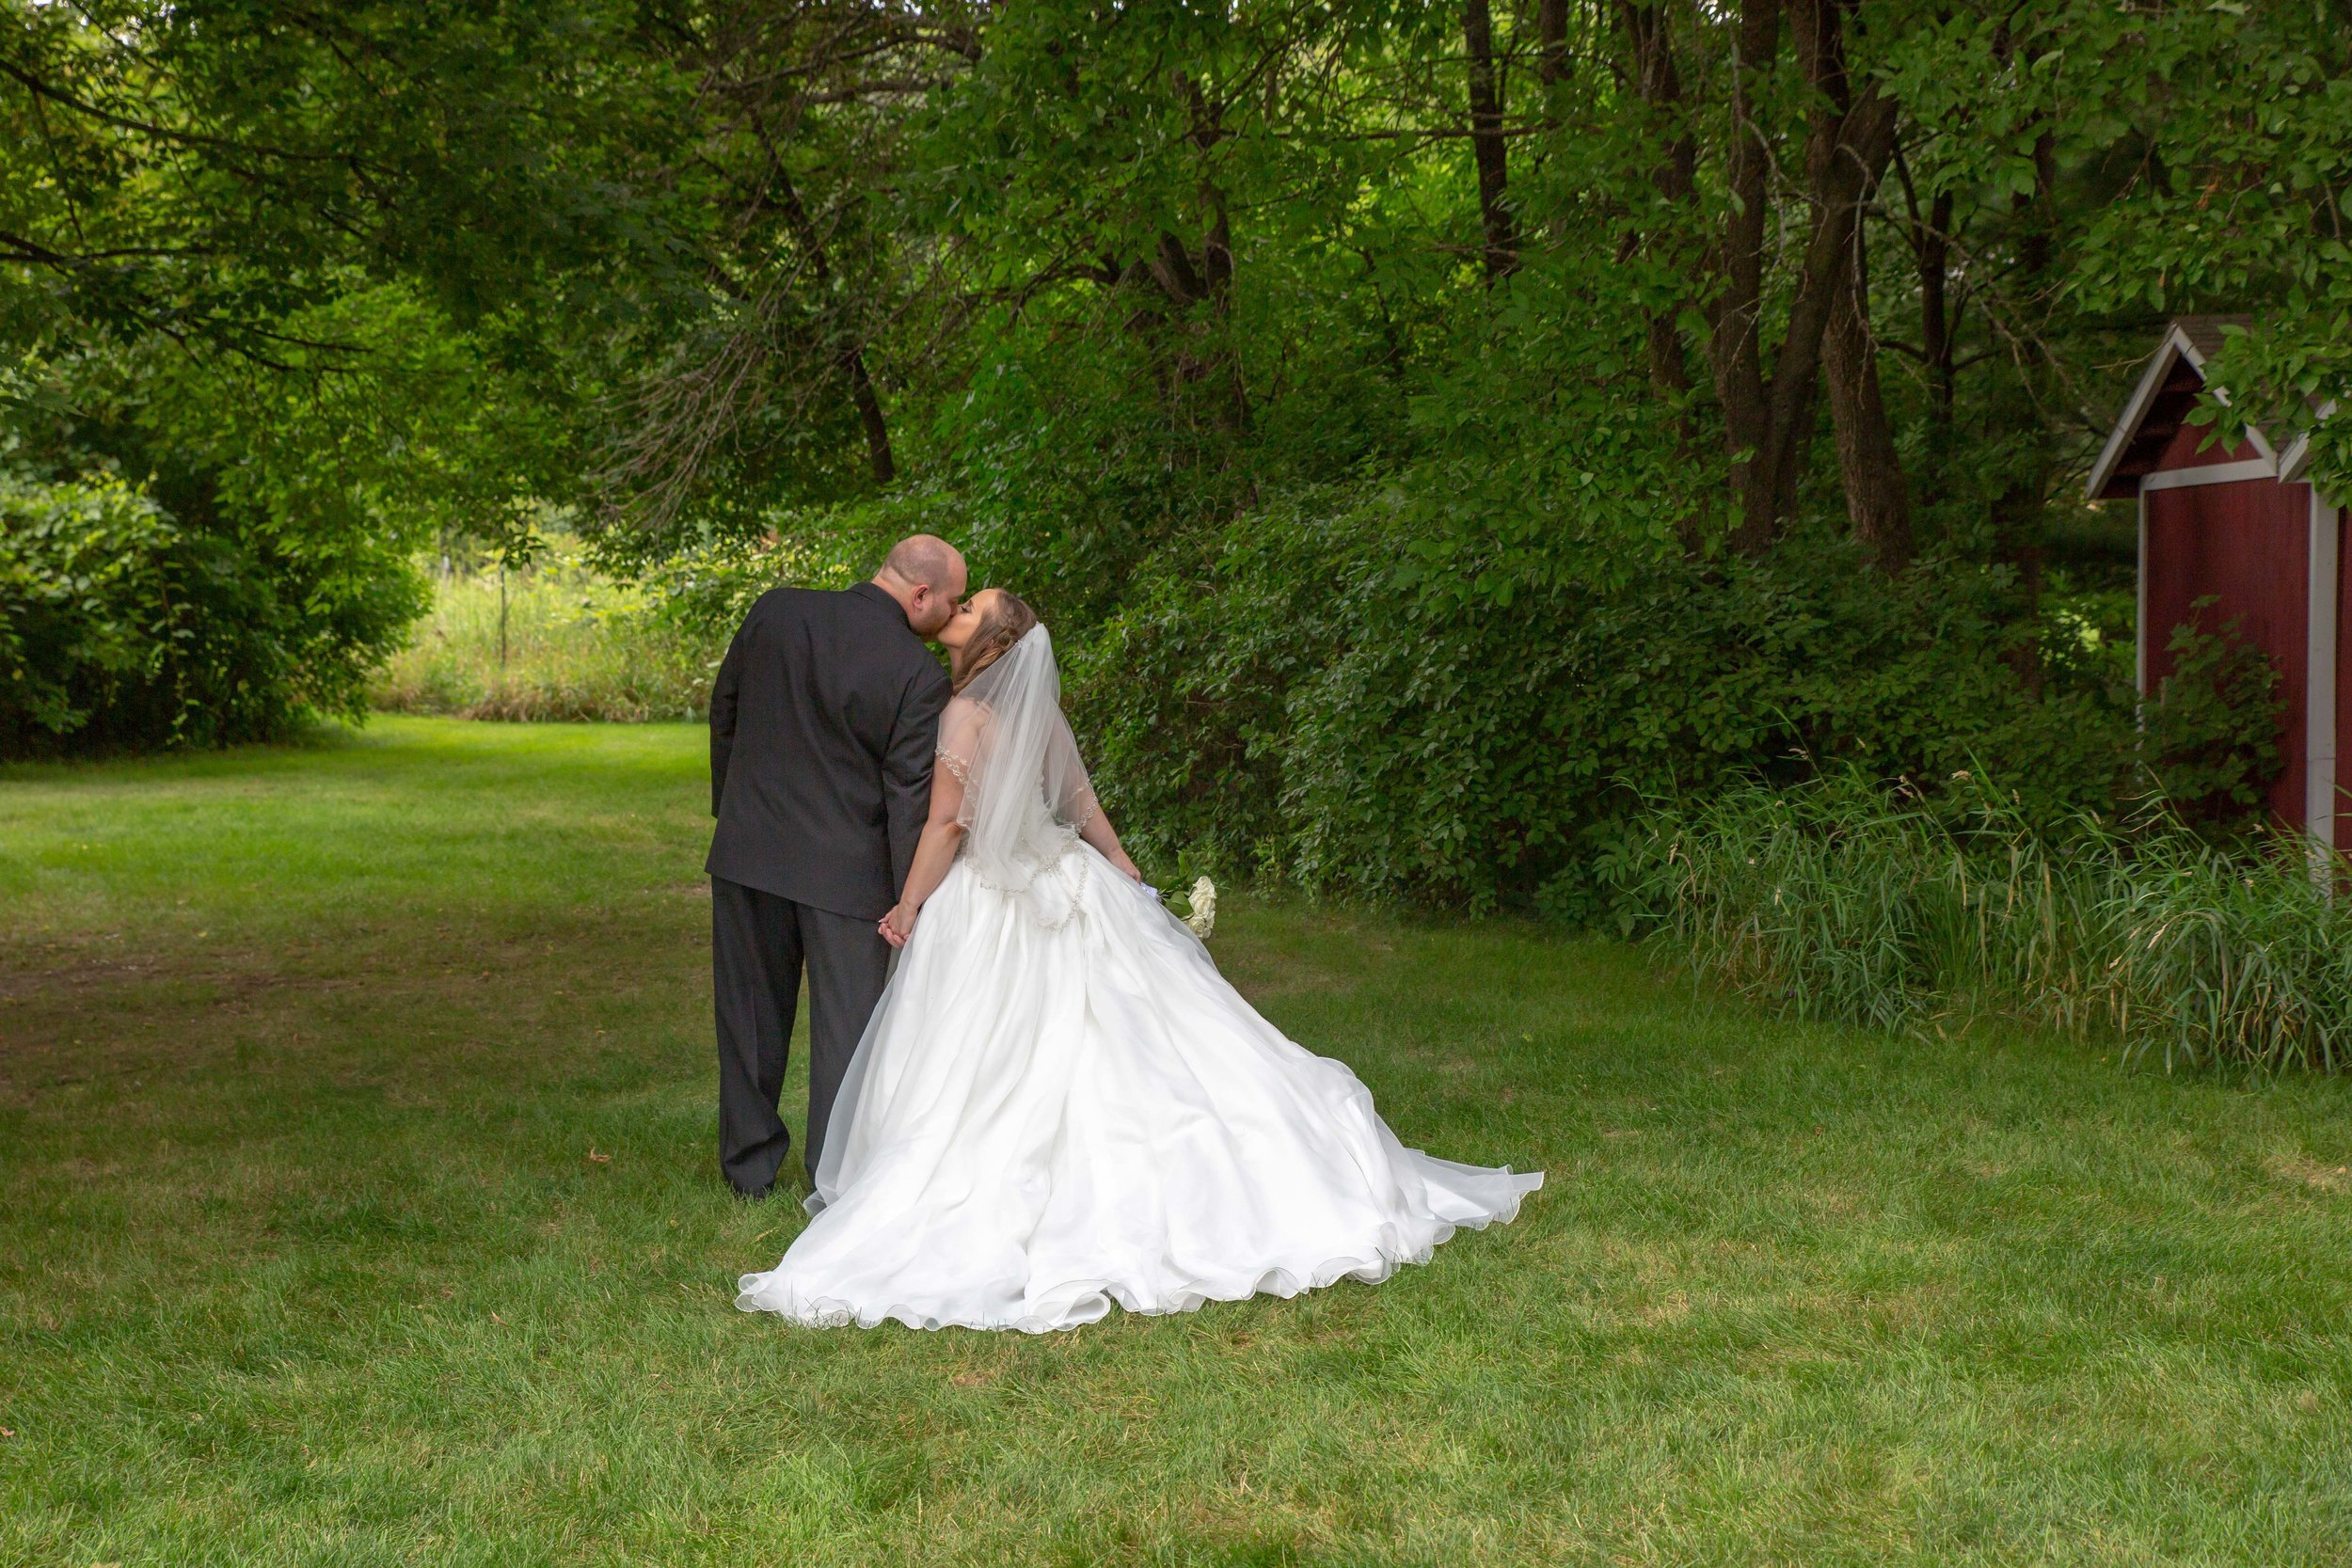 Cindyrella's Garden, Fab Weddings, outdoor Minnesota ceremony, Rosemount wedding, south metro, pretty pear bride